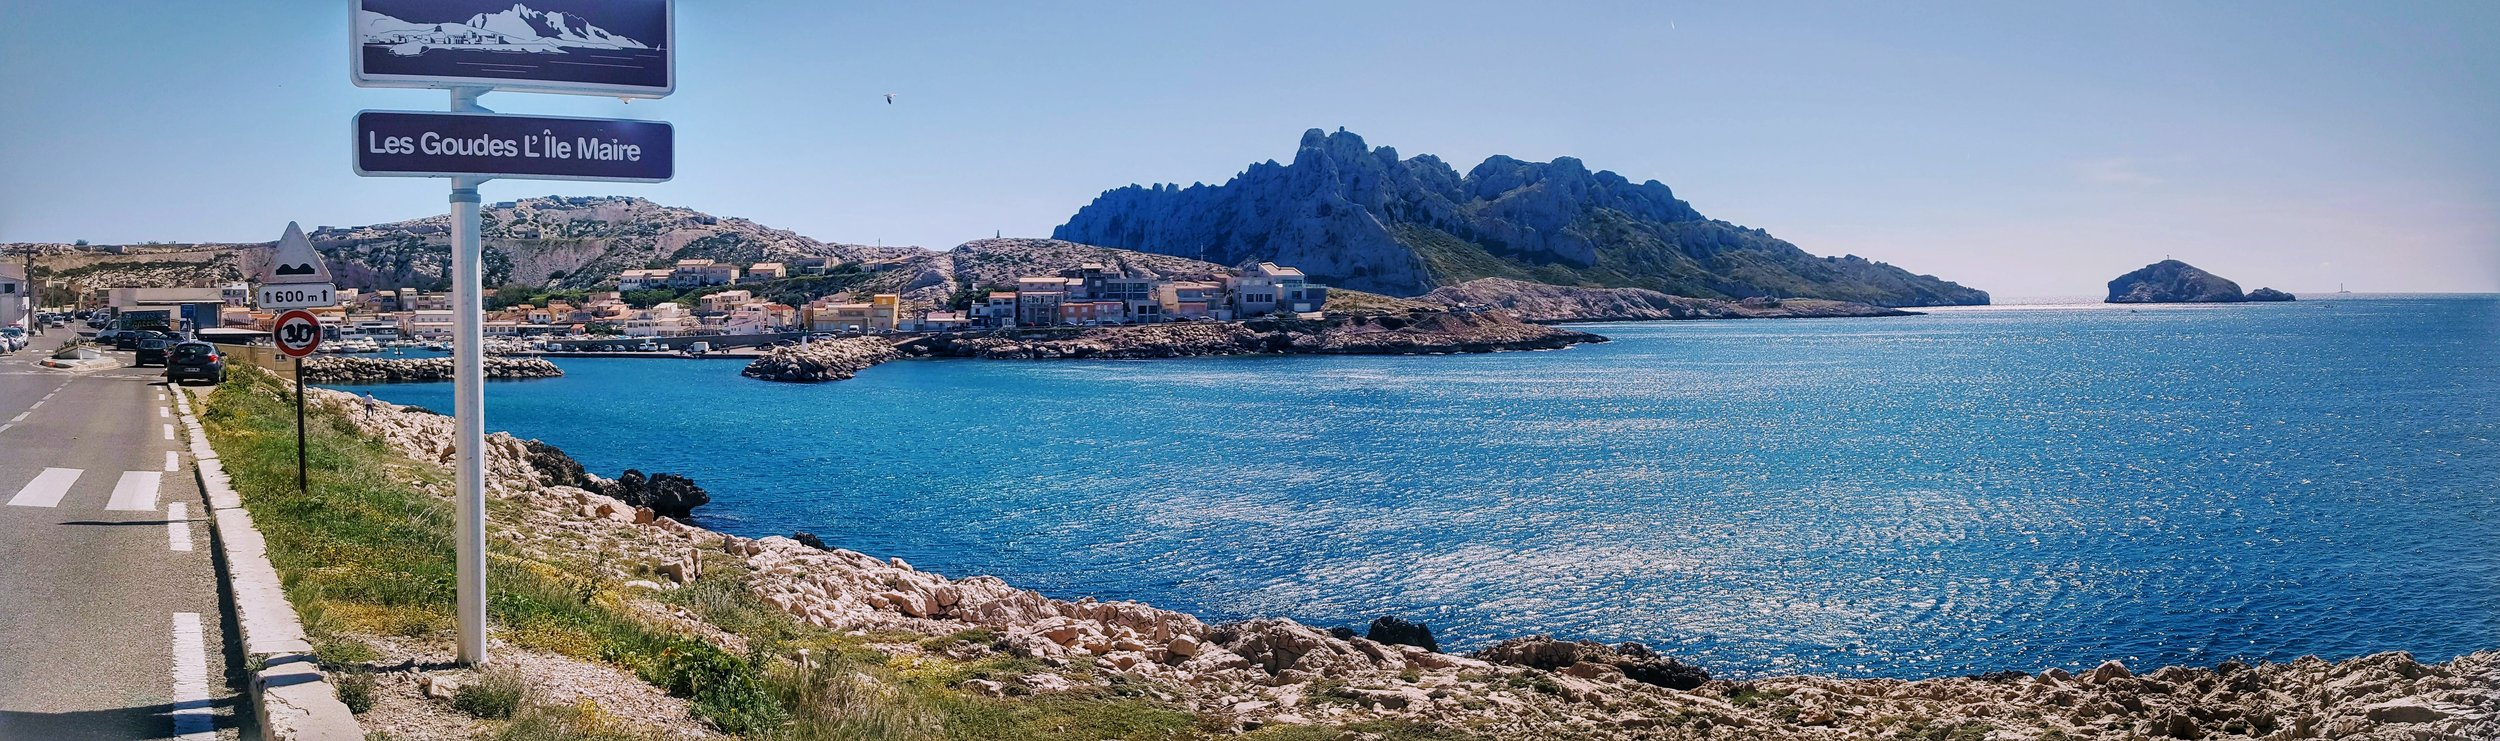 Les Goudes - just south of Marseille